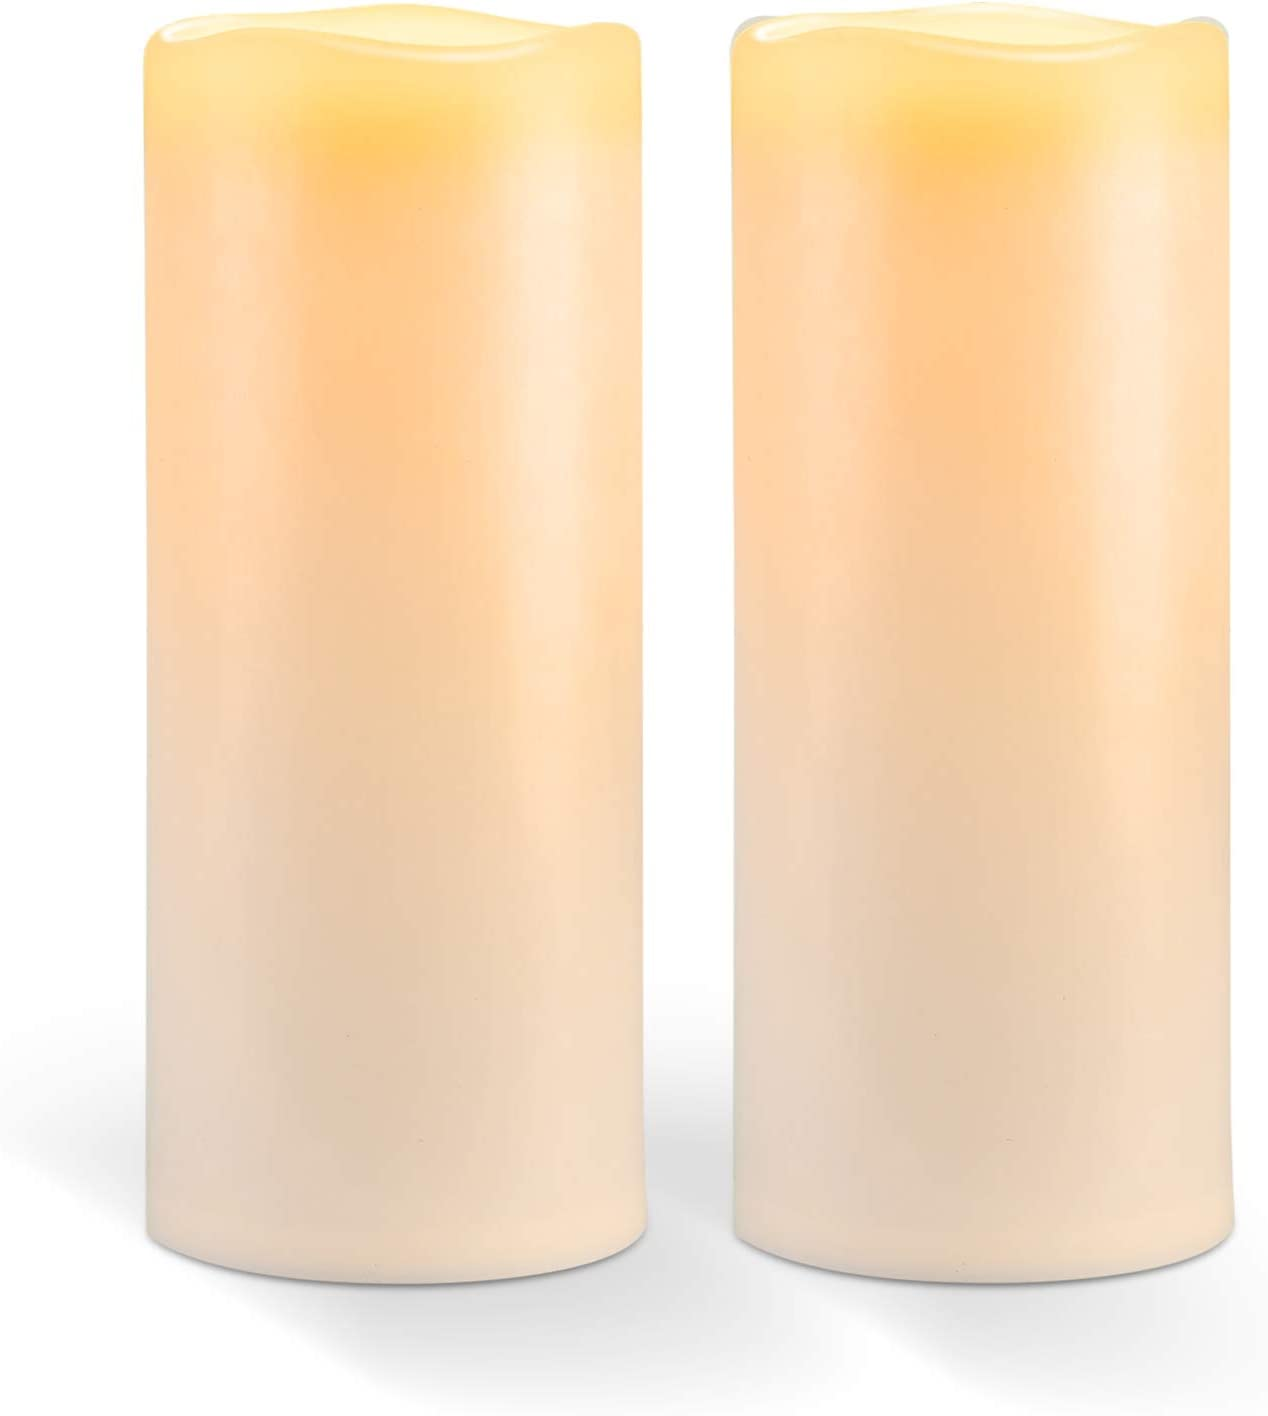 """Amagic 10"""" x 4"""" Outdoor Waterproof Candles, Battery Operated Large Flameless Candles with Timer, Won't melt, Long-Lasting, Ivory, Set of 2"""